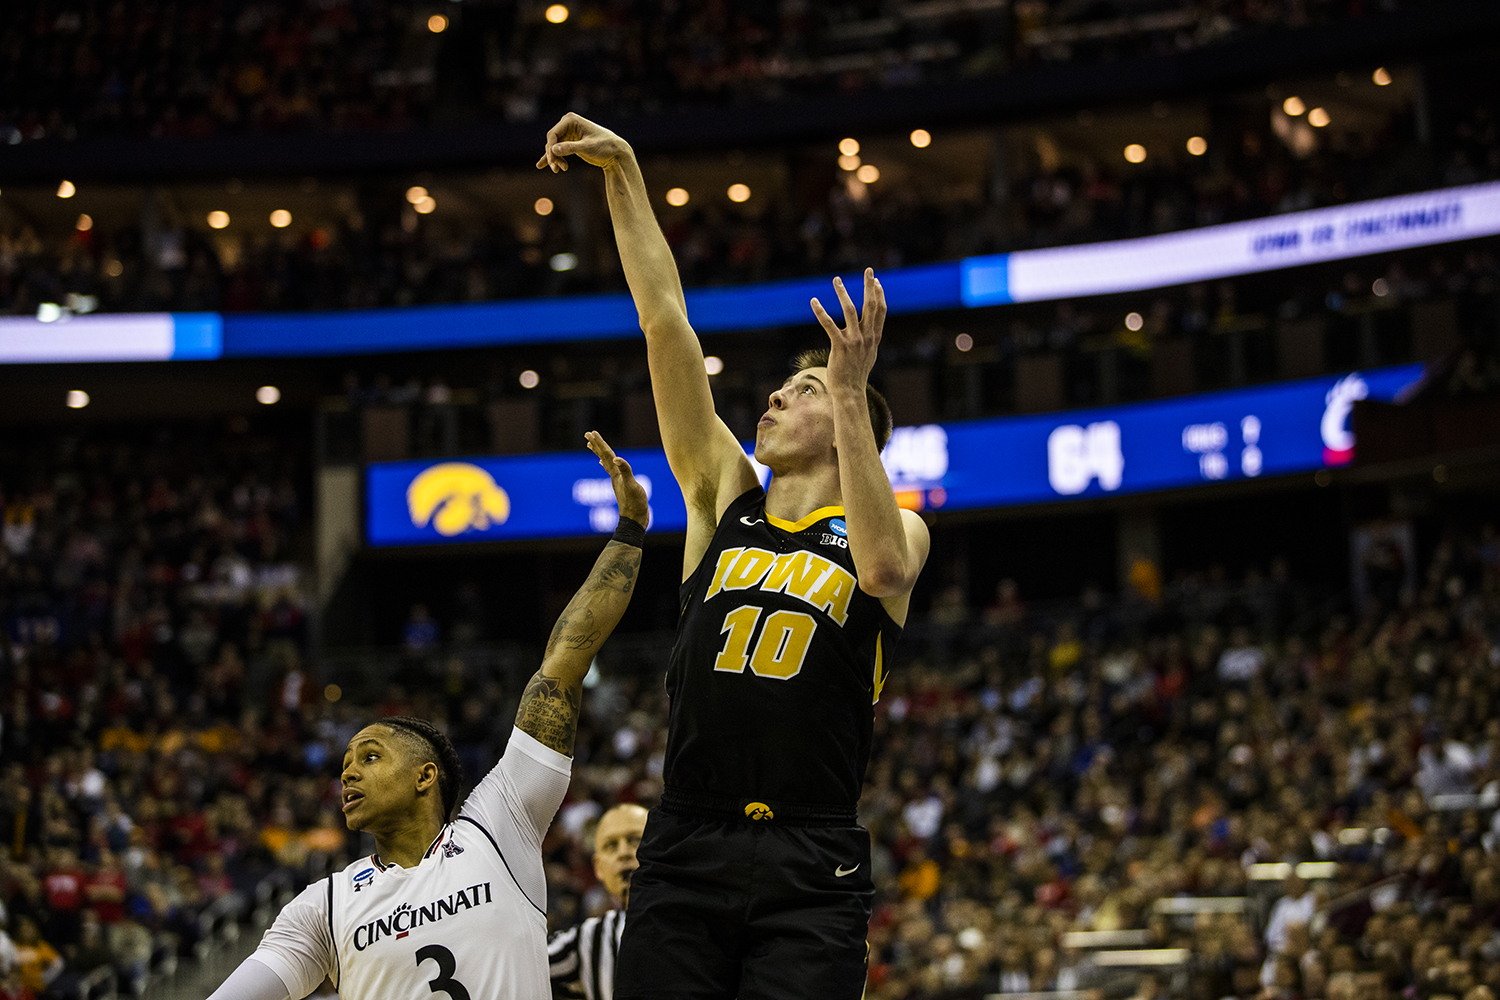 Iowa guard Joe Wieskamp shoots a three-pointer in the last few minutes of the NCAA game against Cincinnati at the Nationwide Arena on Friday, March 22, 2019. The Hawkeyes defeated the Bearcats 79-72. (Katina Zentz/The Daily Iowan)